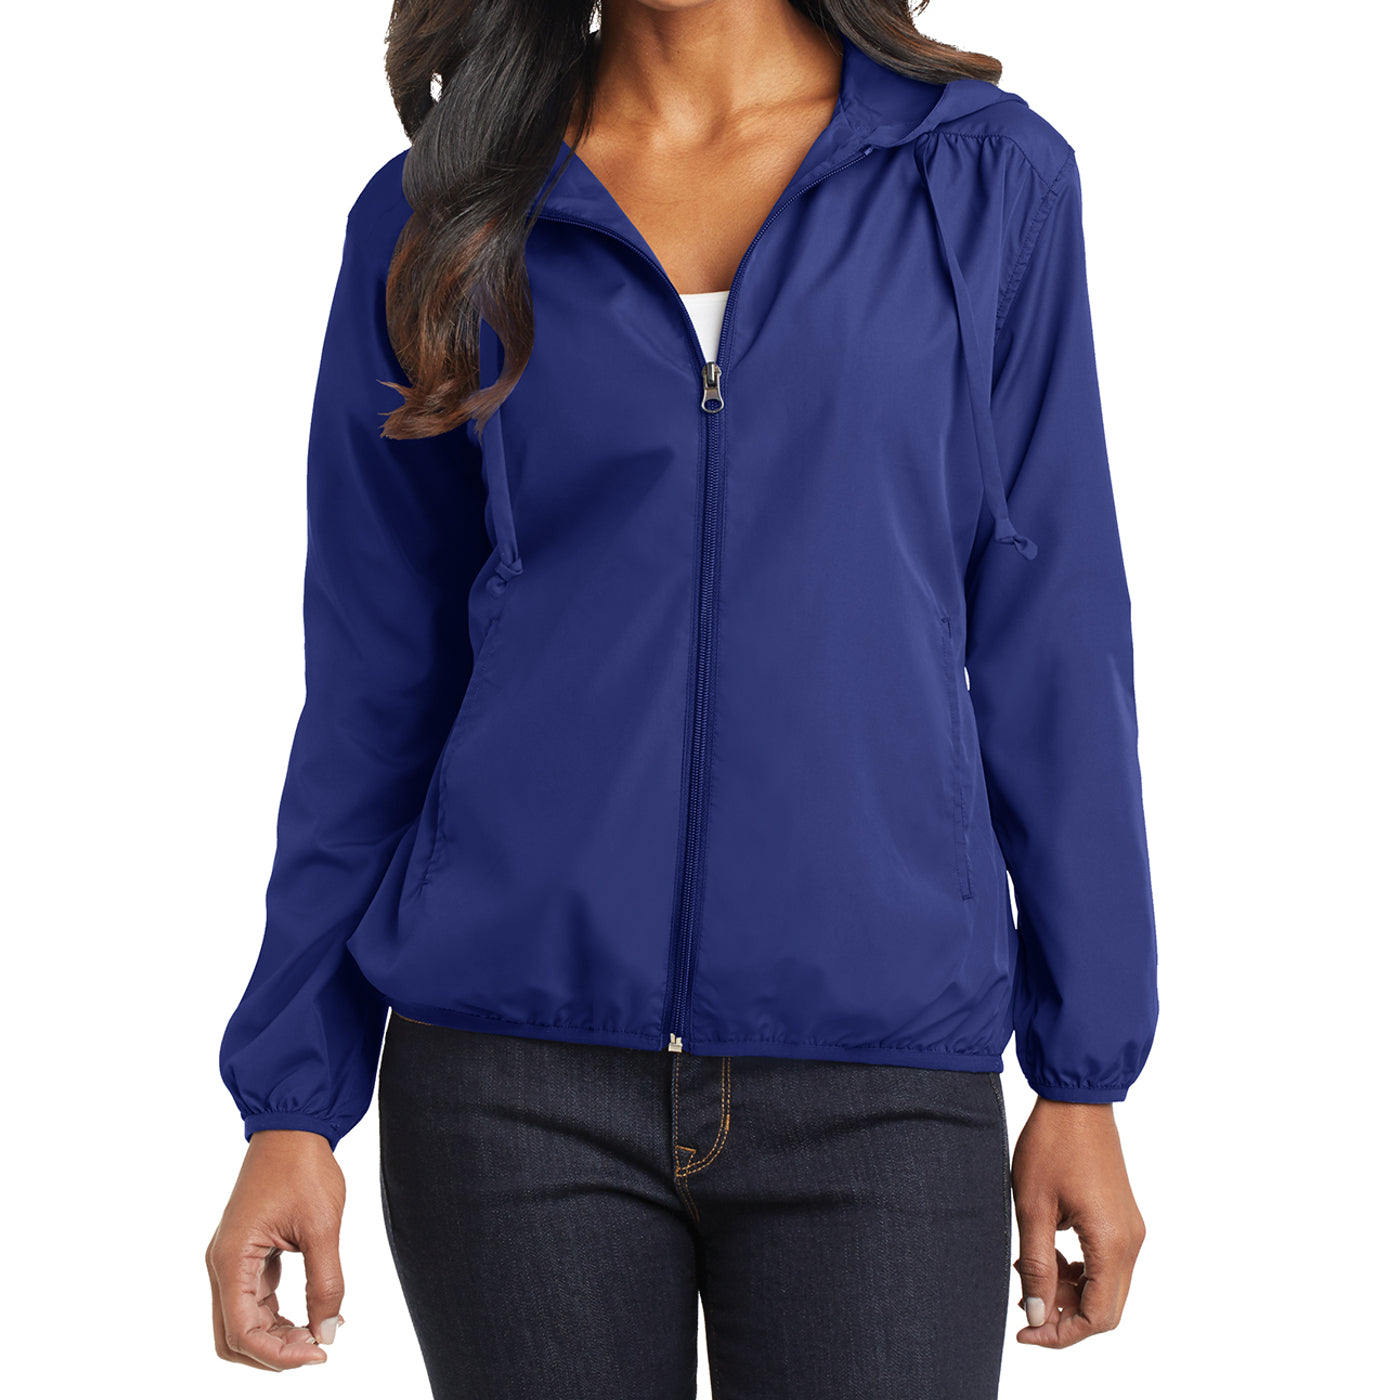 Women's Hooded Essential Jacket - Mediterranean Blue - Front